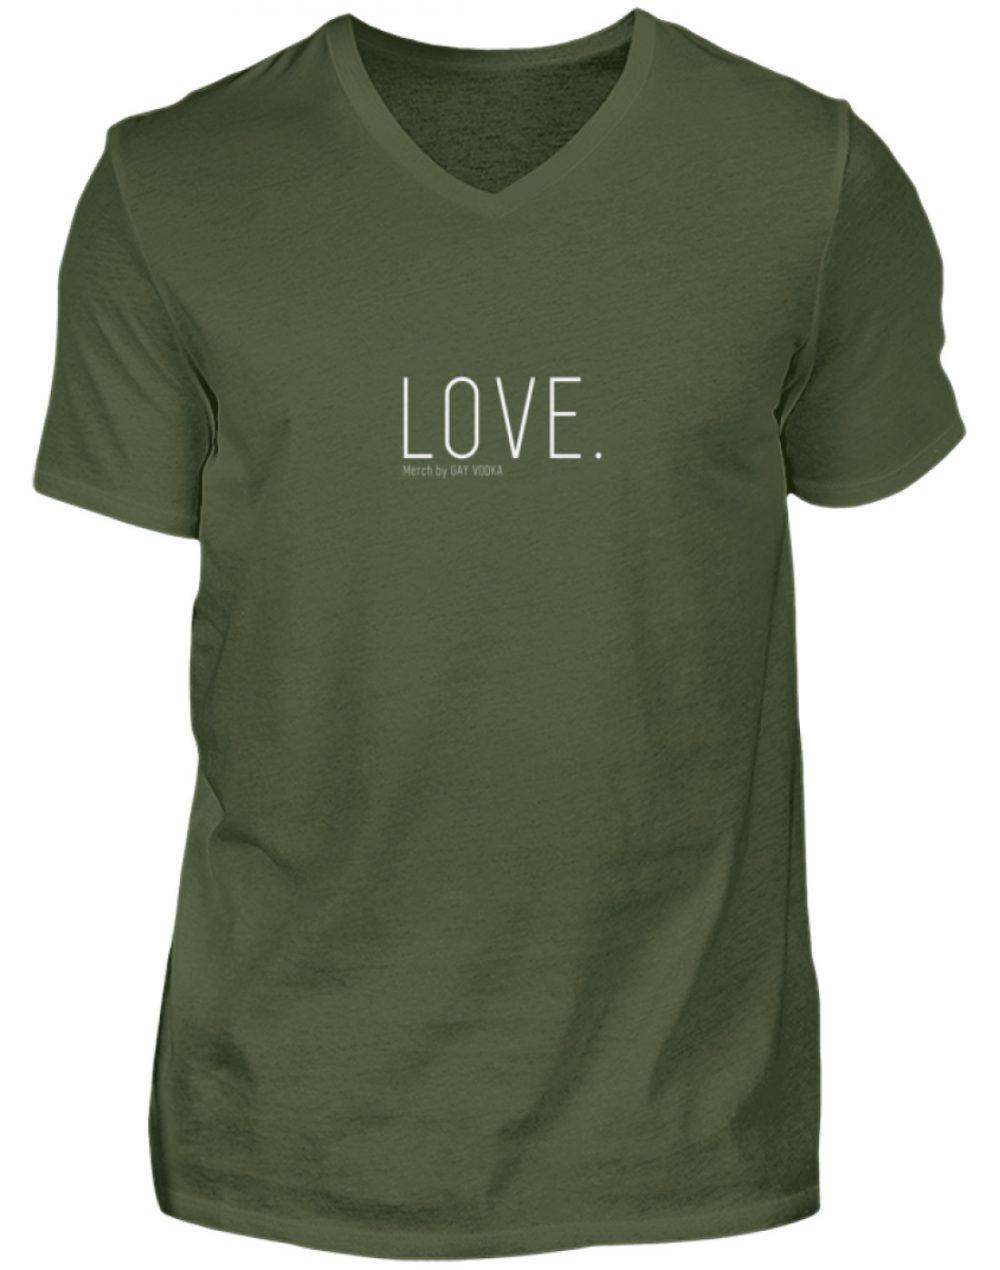 LOVE. - Herren V-Neck Shirt-2587